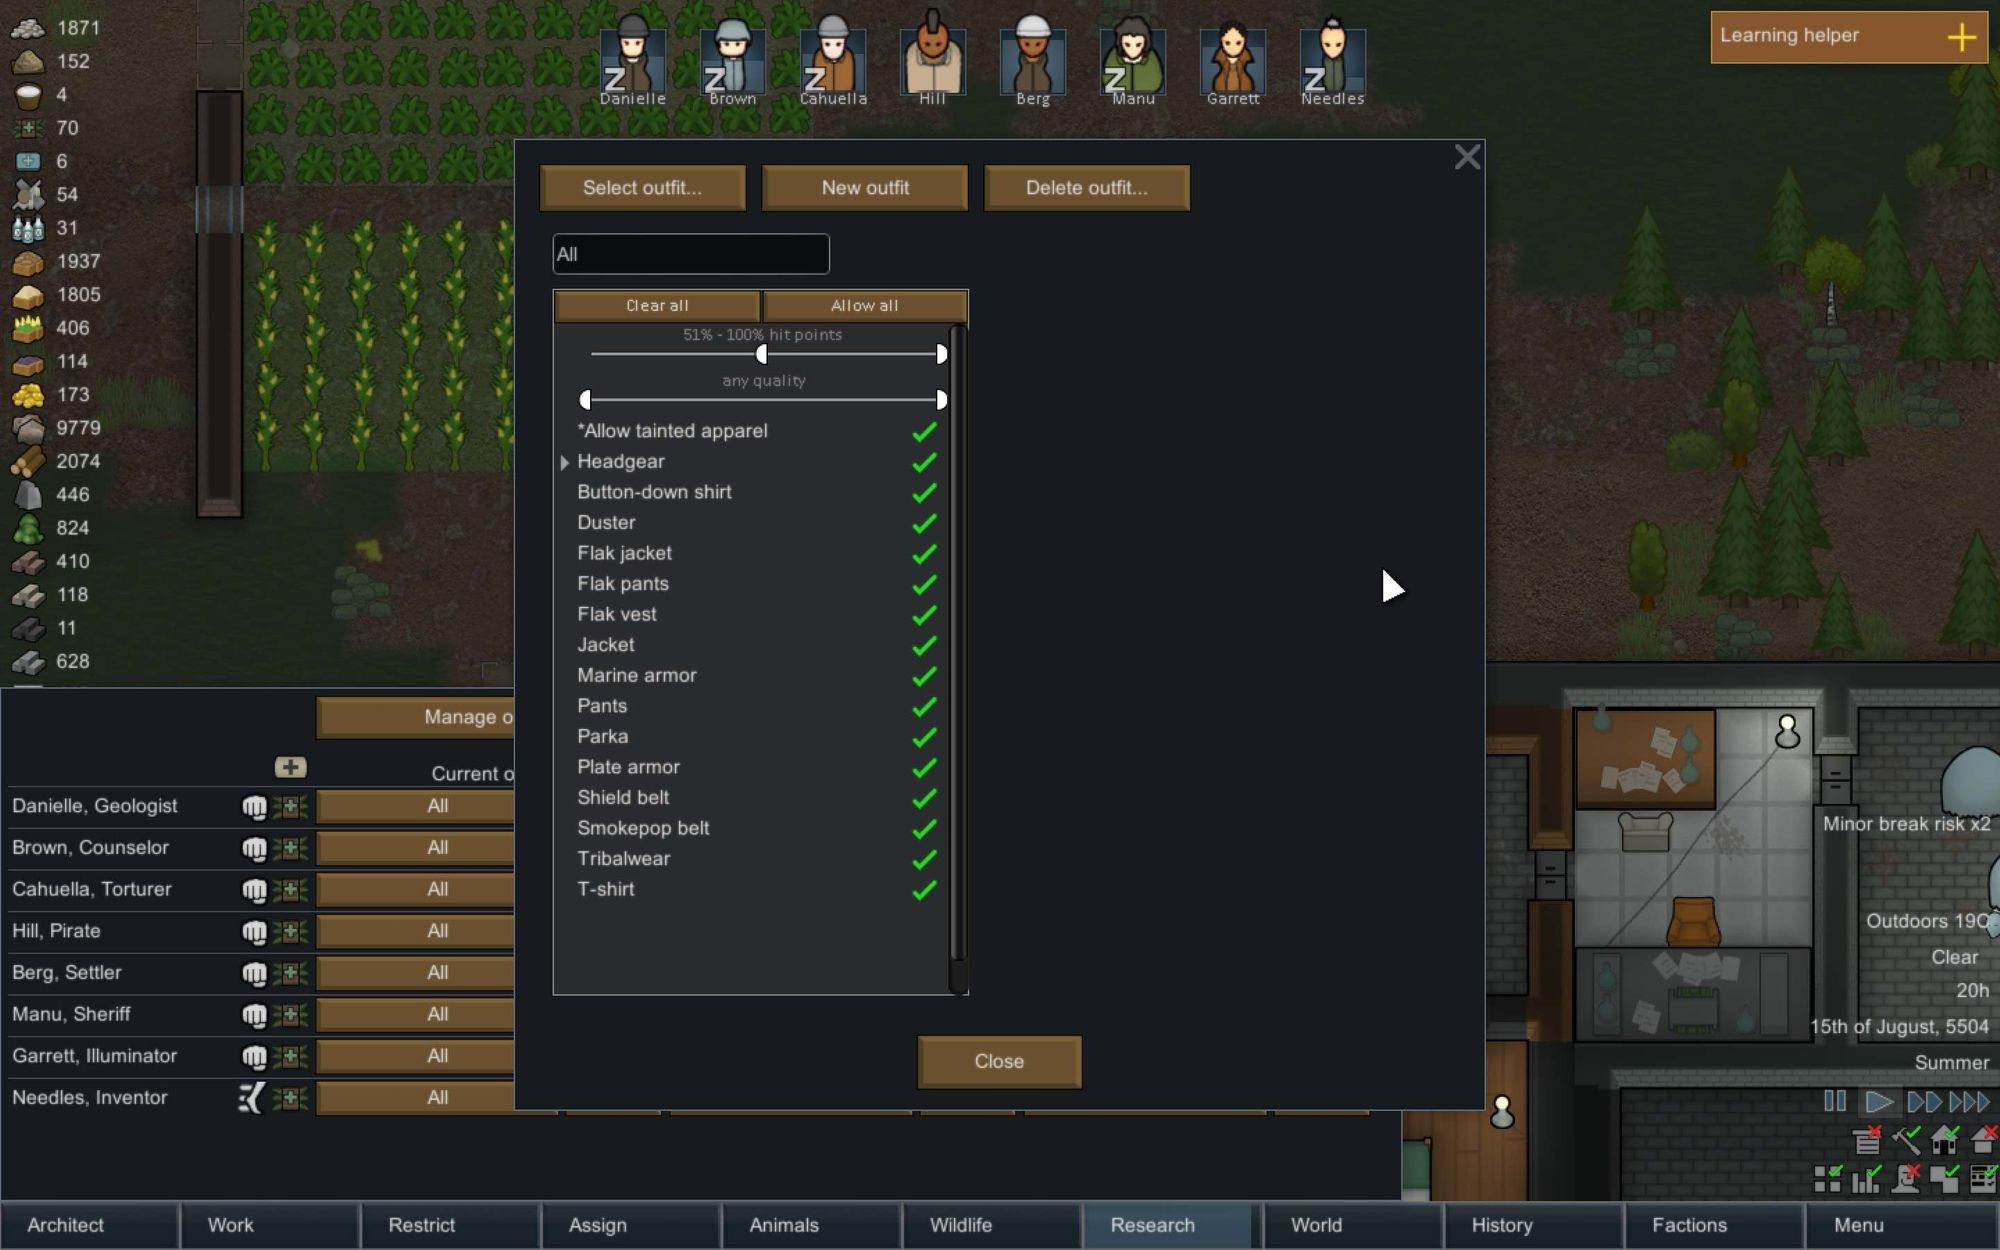 Outfit Settings in RimWorld